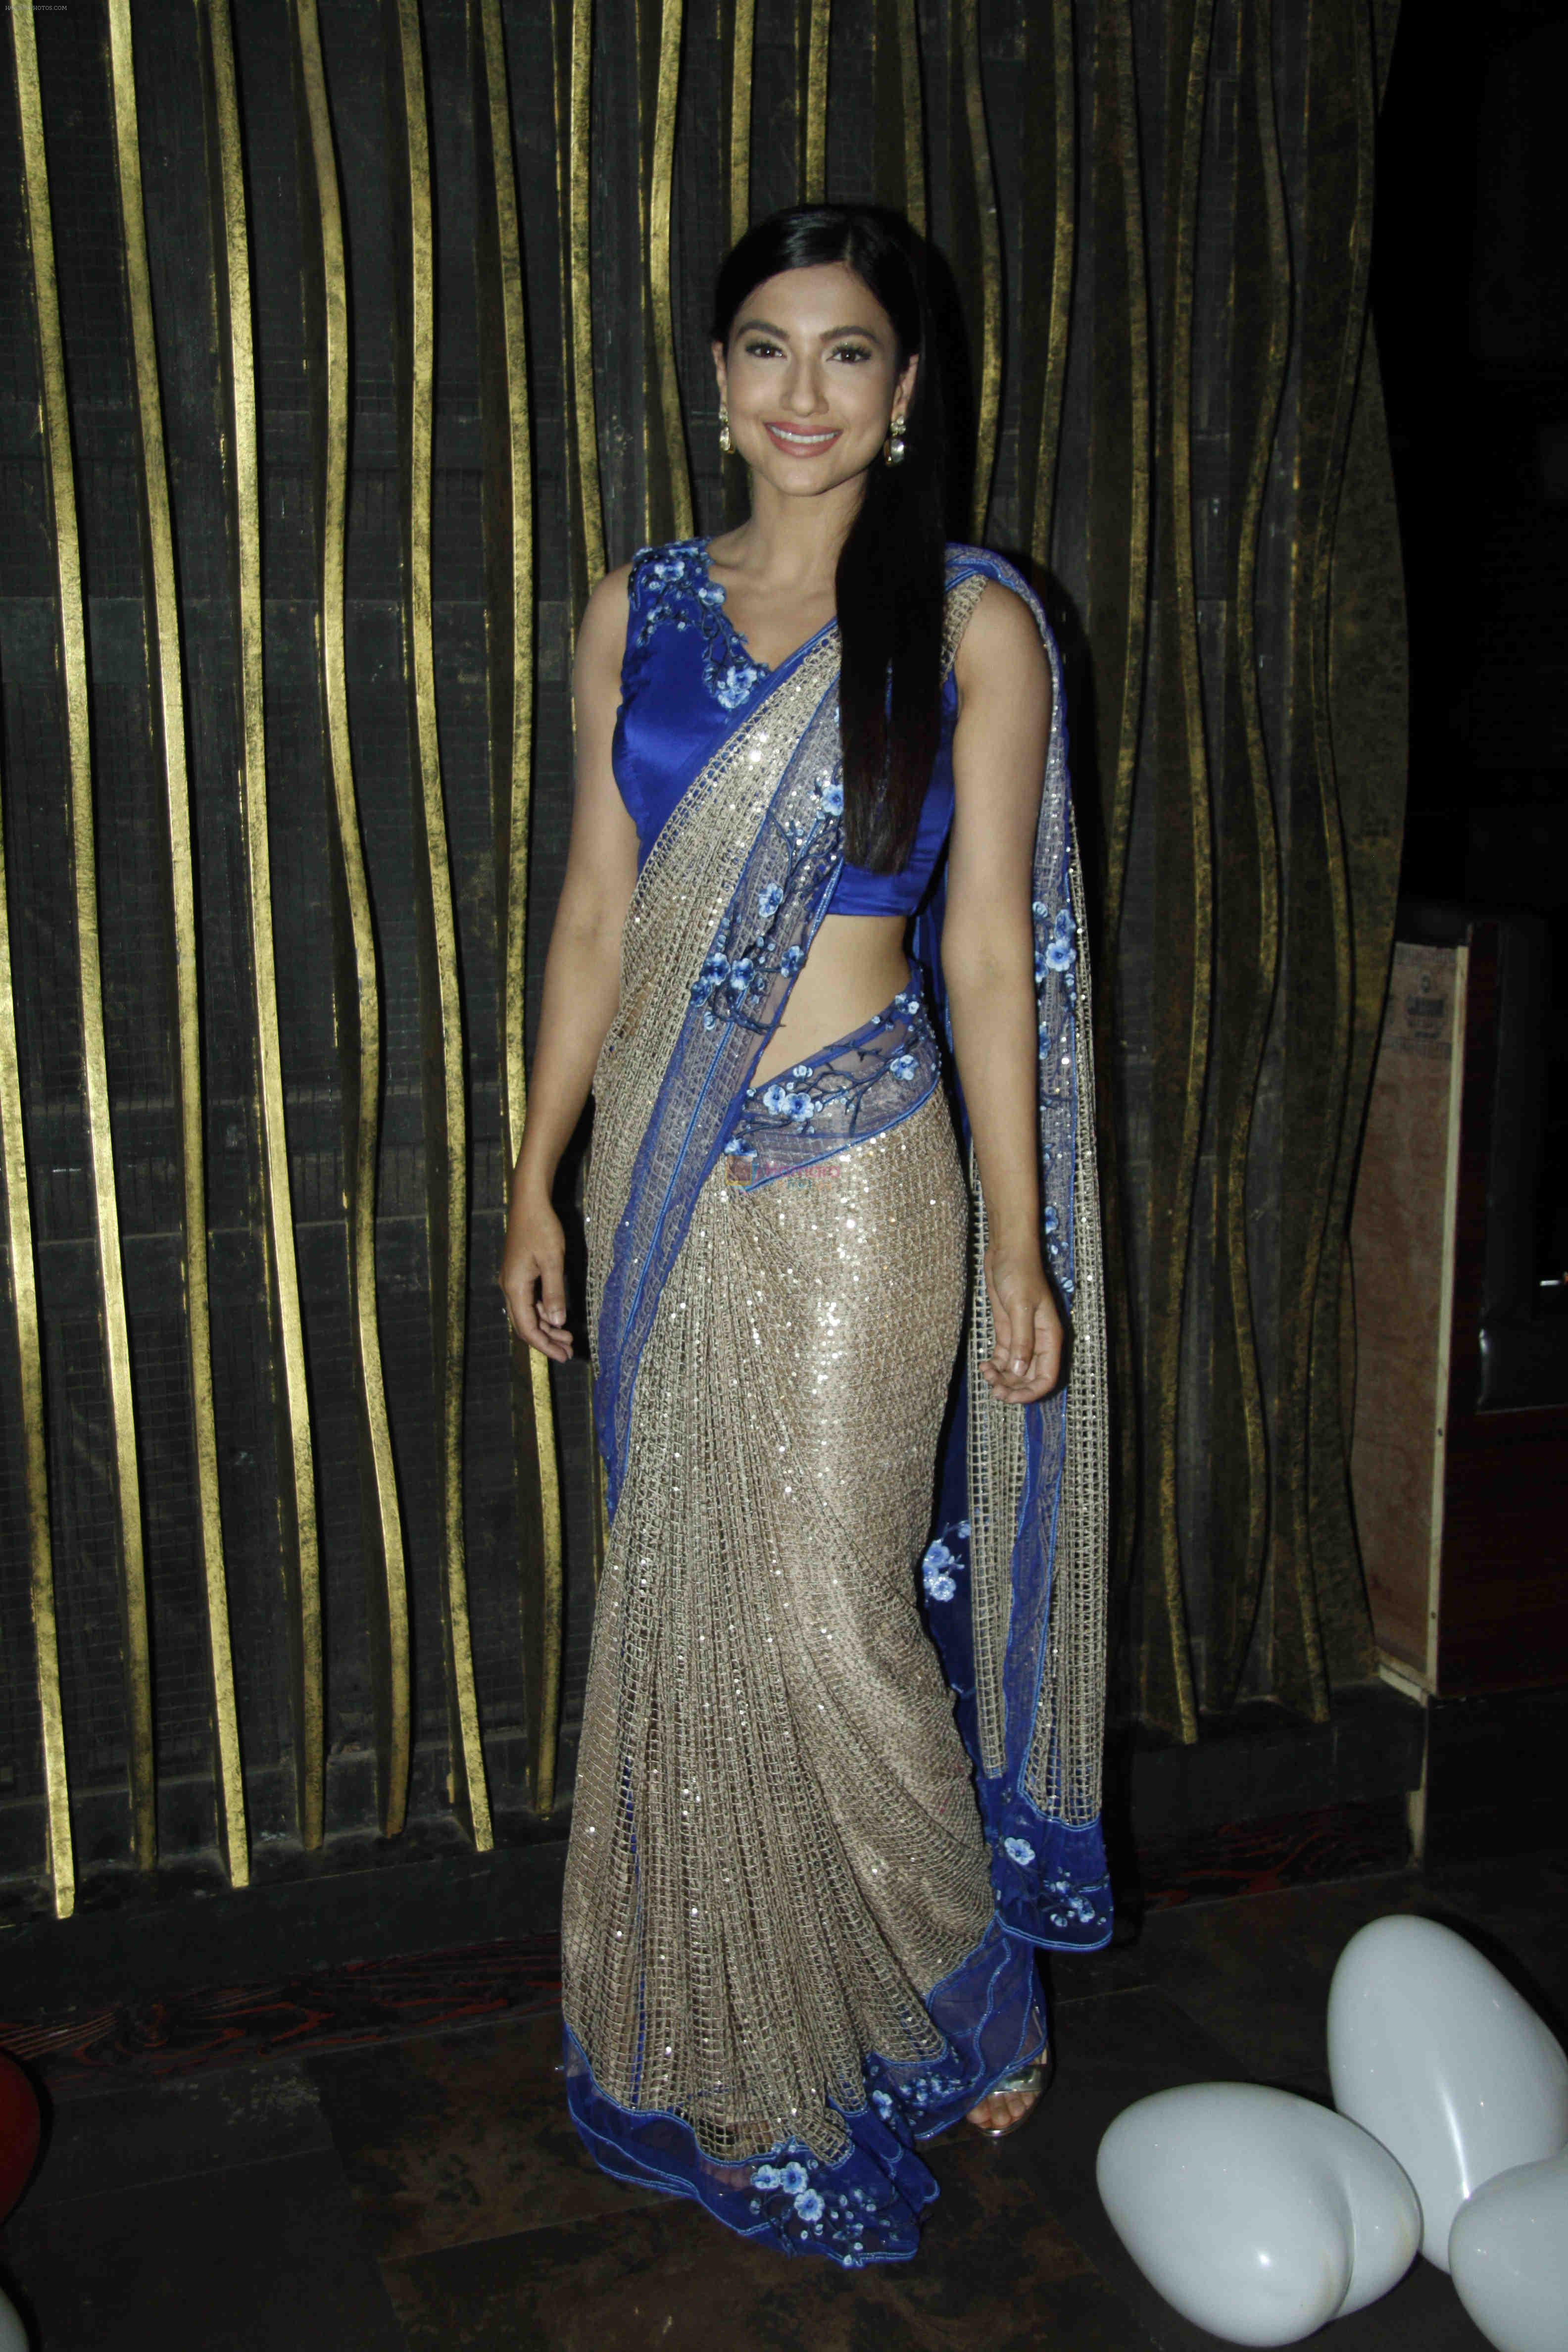 Gauhar Khan at the red carpet of the post wedding celebrations of Sambhavna & Avinash at Bora Bora